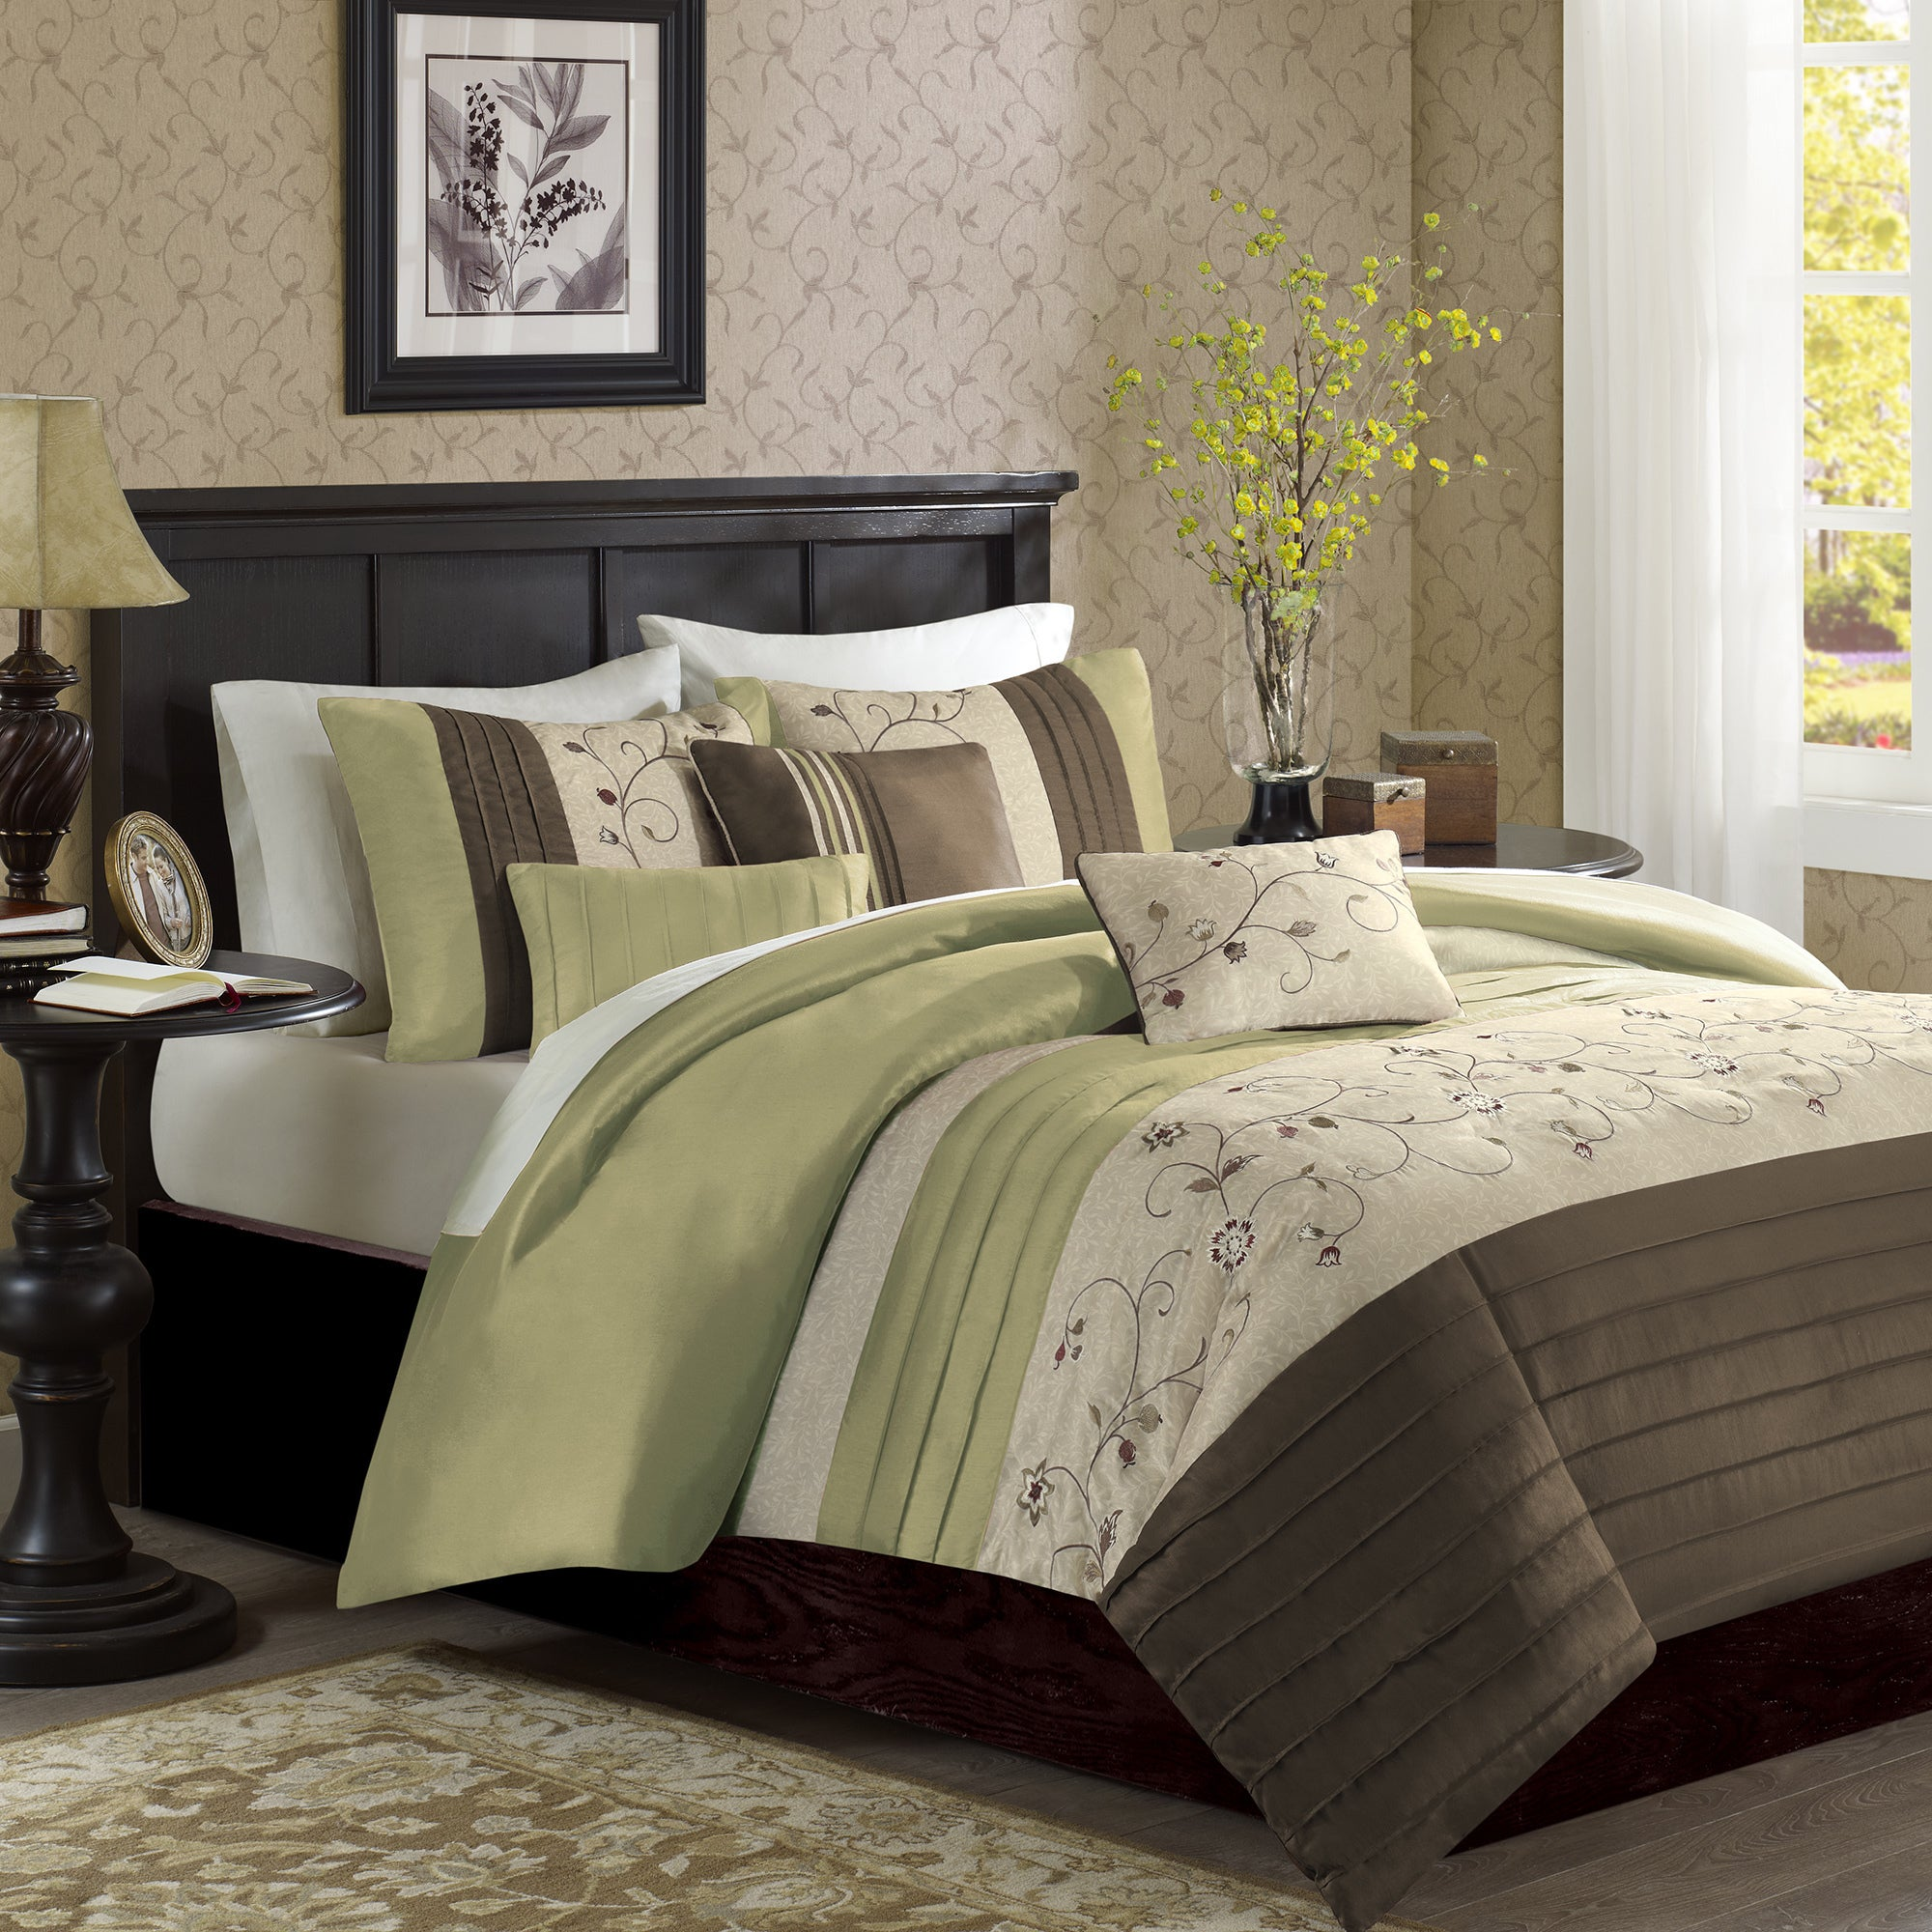 sets p set bedding floral comforter green palace ivory butterfly